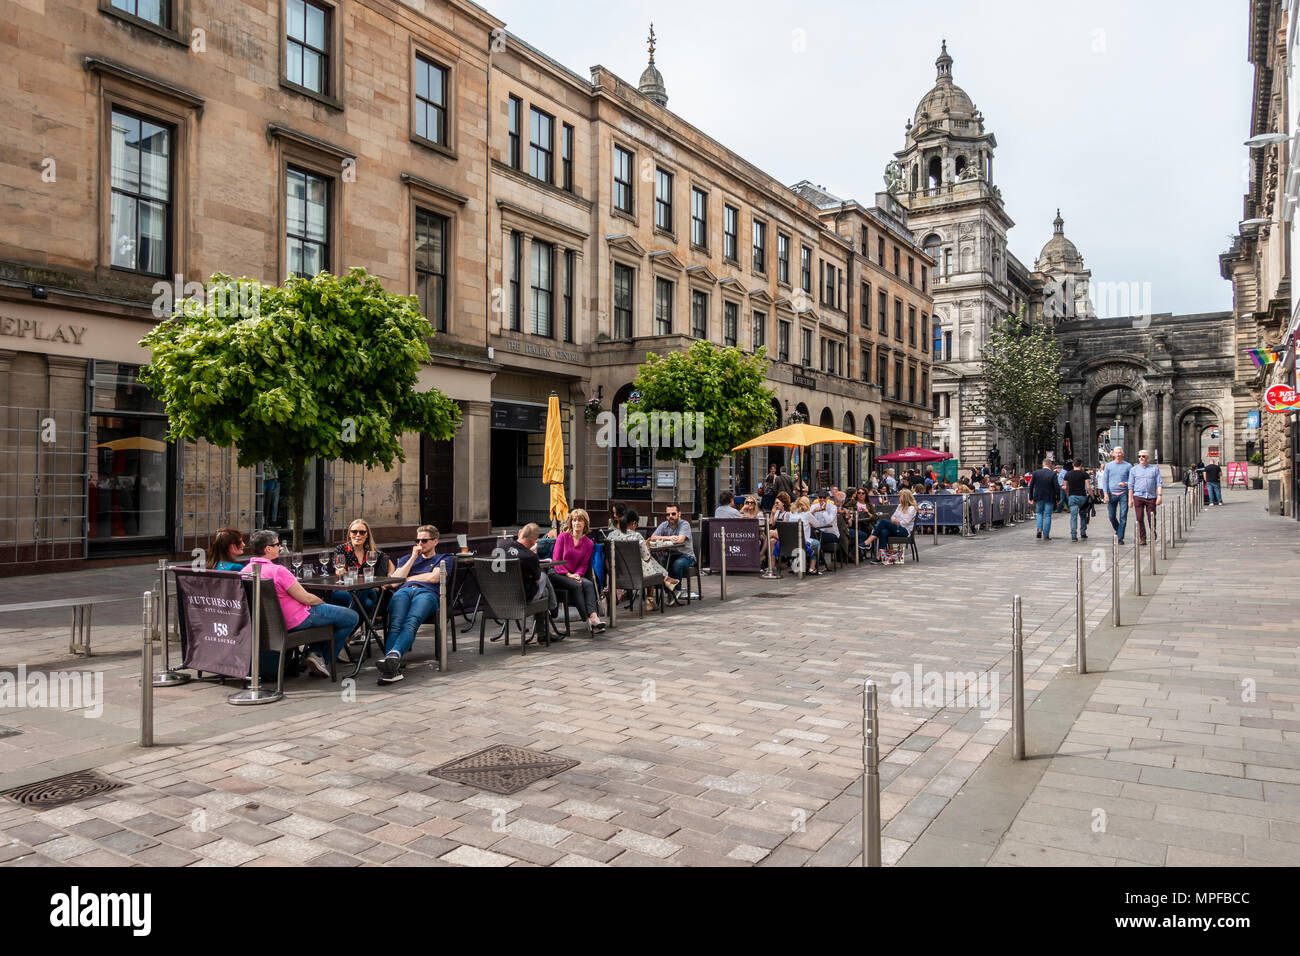 John Street in the Merchant City of Glasgow, on a warm May evening, with people walking and others eating and drinking. Scotland, UK - Stock Image